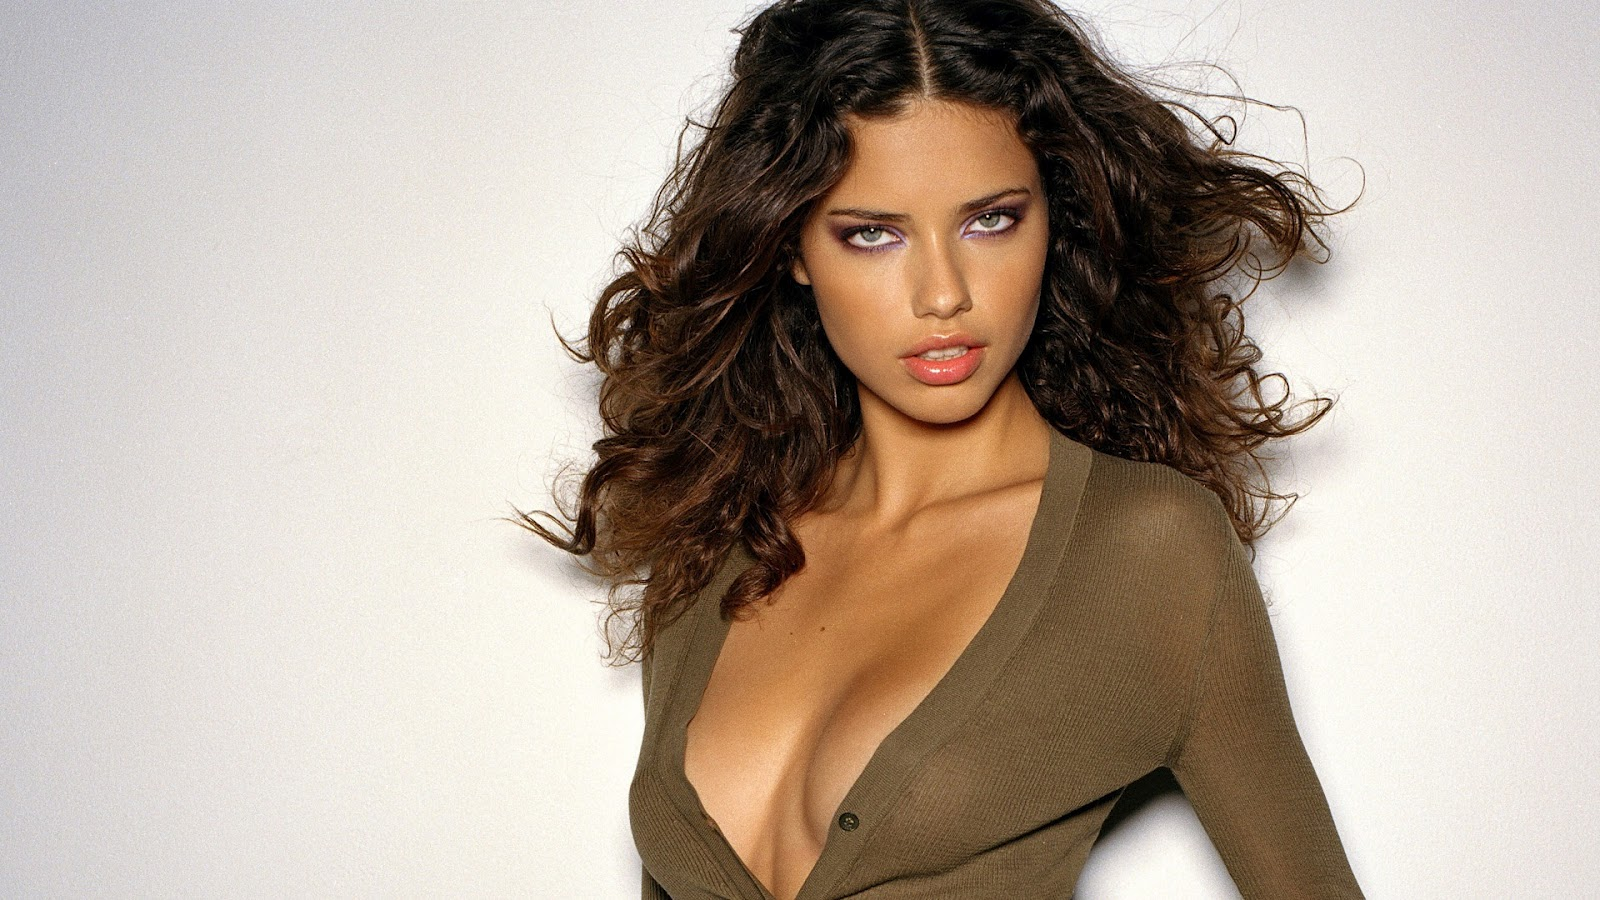 adriana lima beautiful image - photo #19